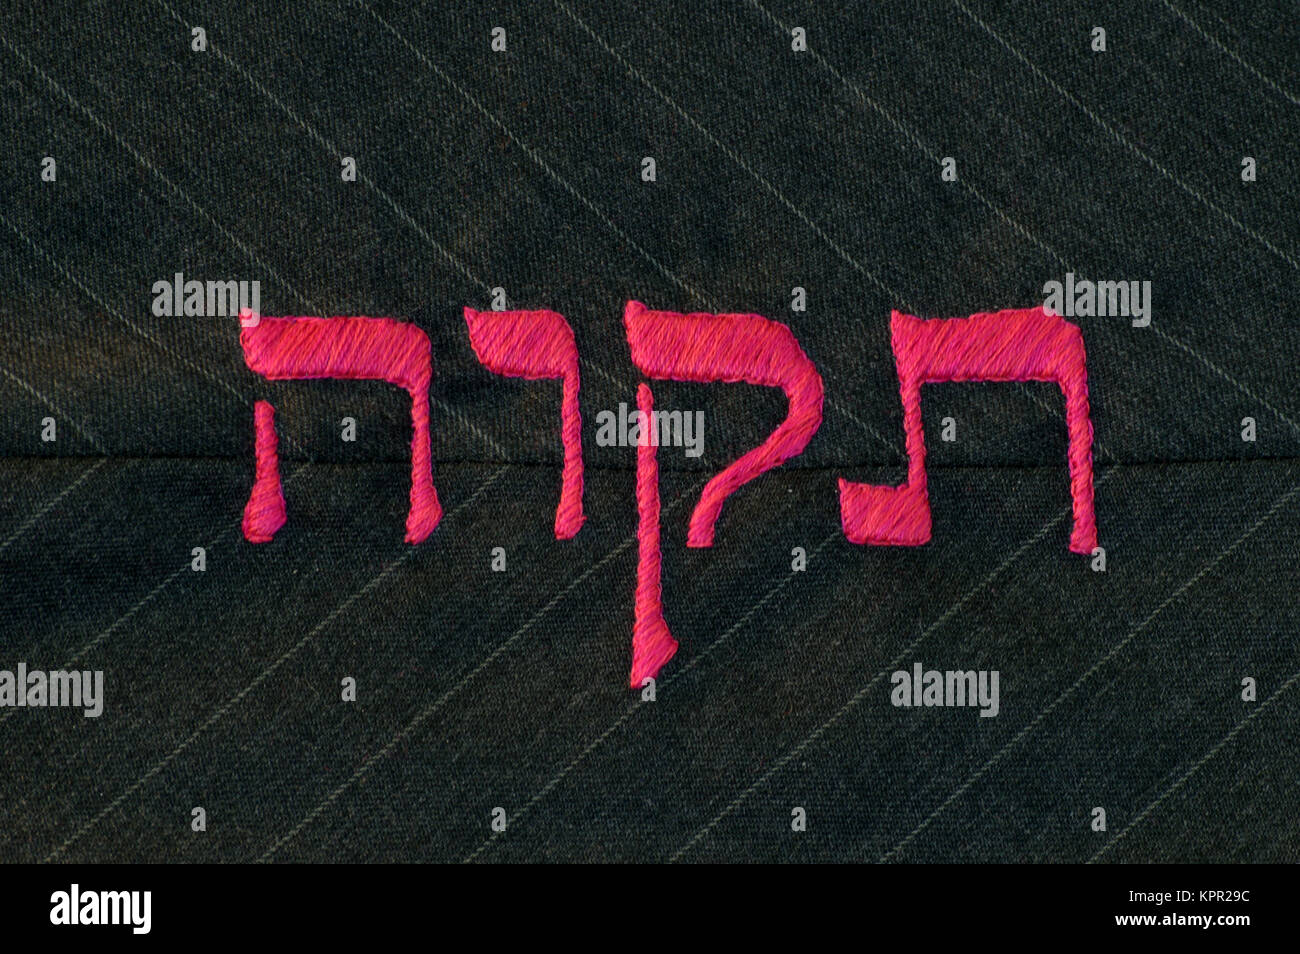 Hope in Hebrew language, stitched on fabric - Stock Image